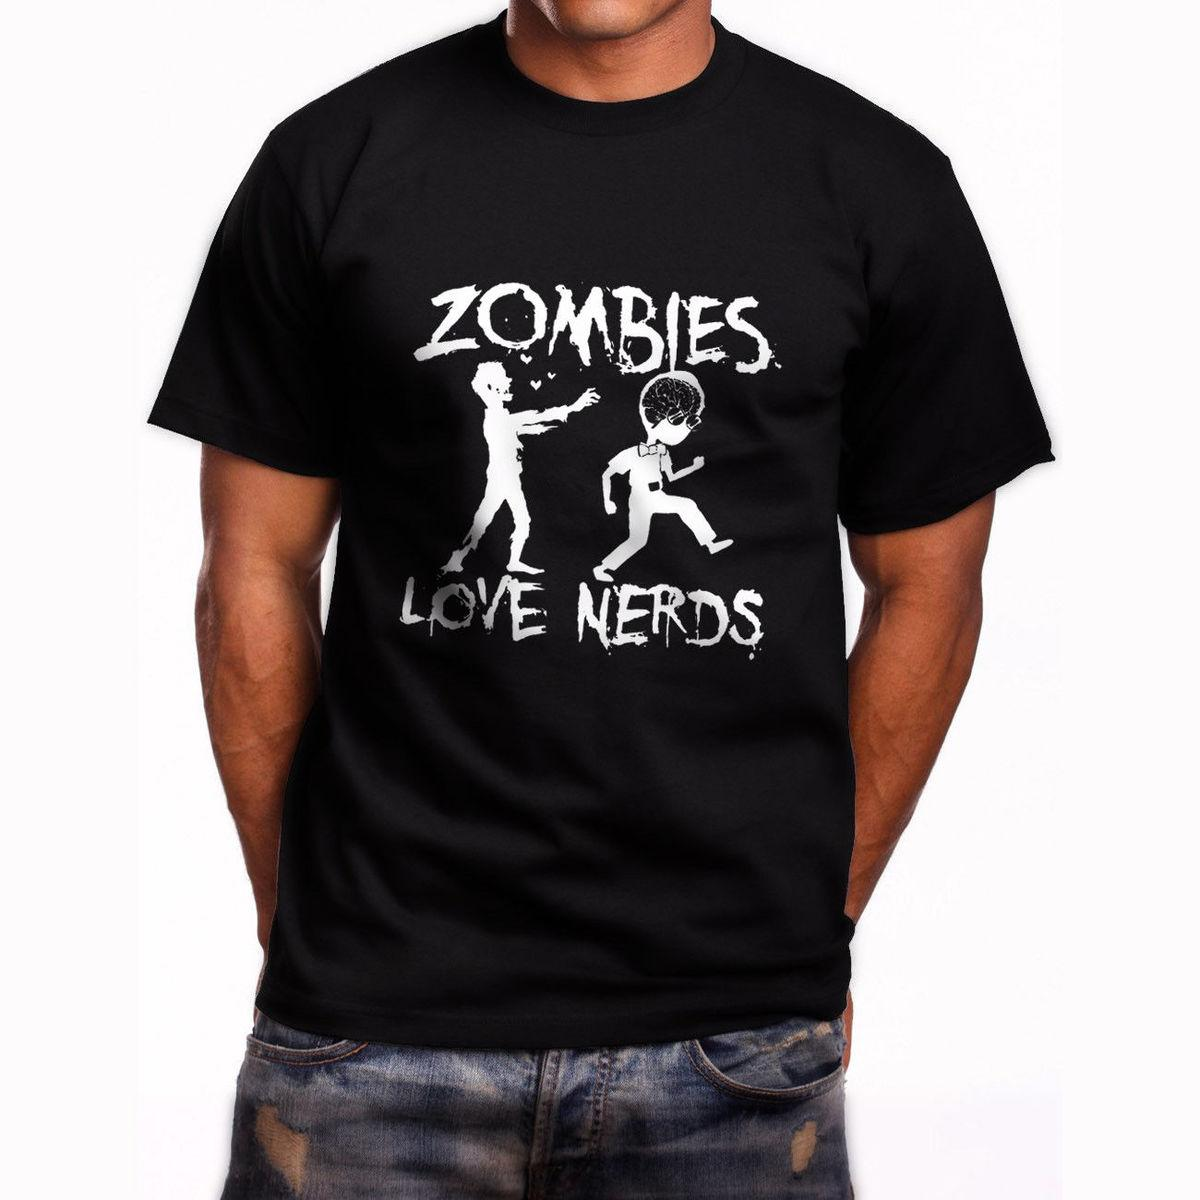 95d21a9b2 New Zombies Love Nerds Graphic Short Sleeve Men'S Black T Shirt Size S To  5XL Style Round Style Tshirt Tees Custom Jersey T Shirt Quality T Shirts T  Shirt ...